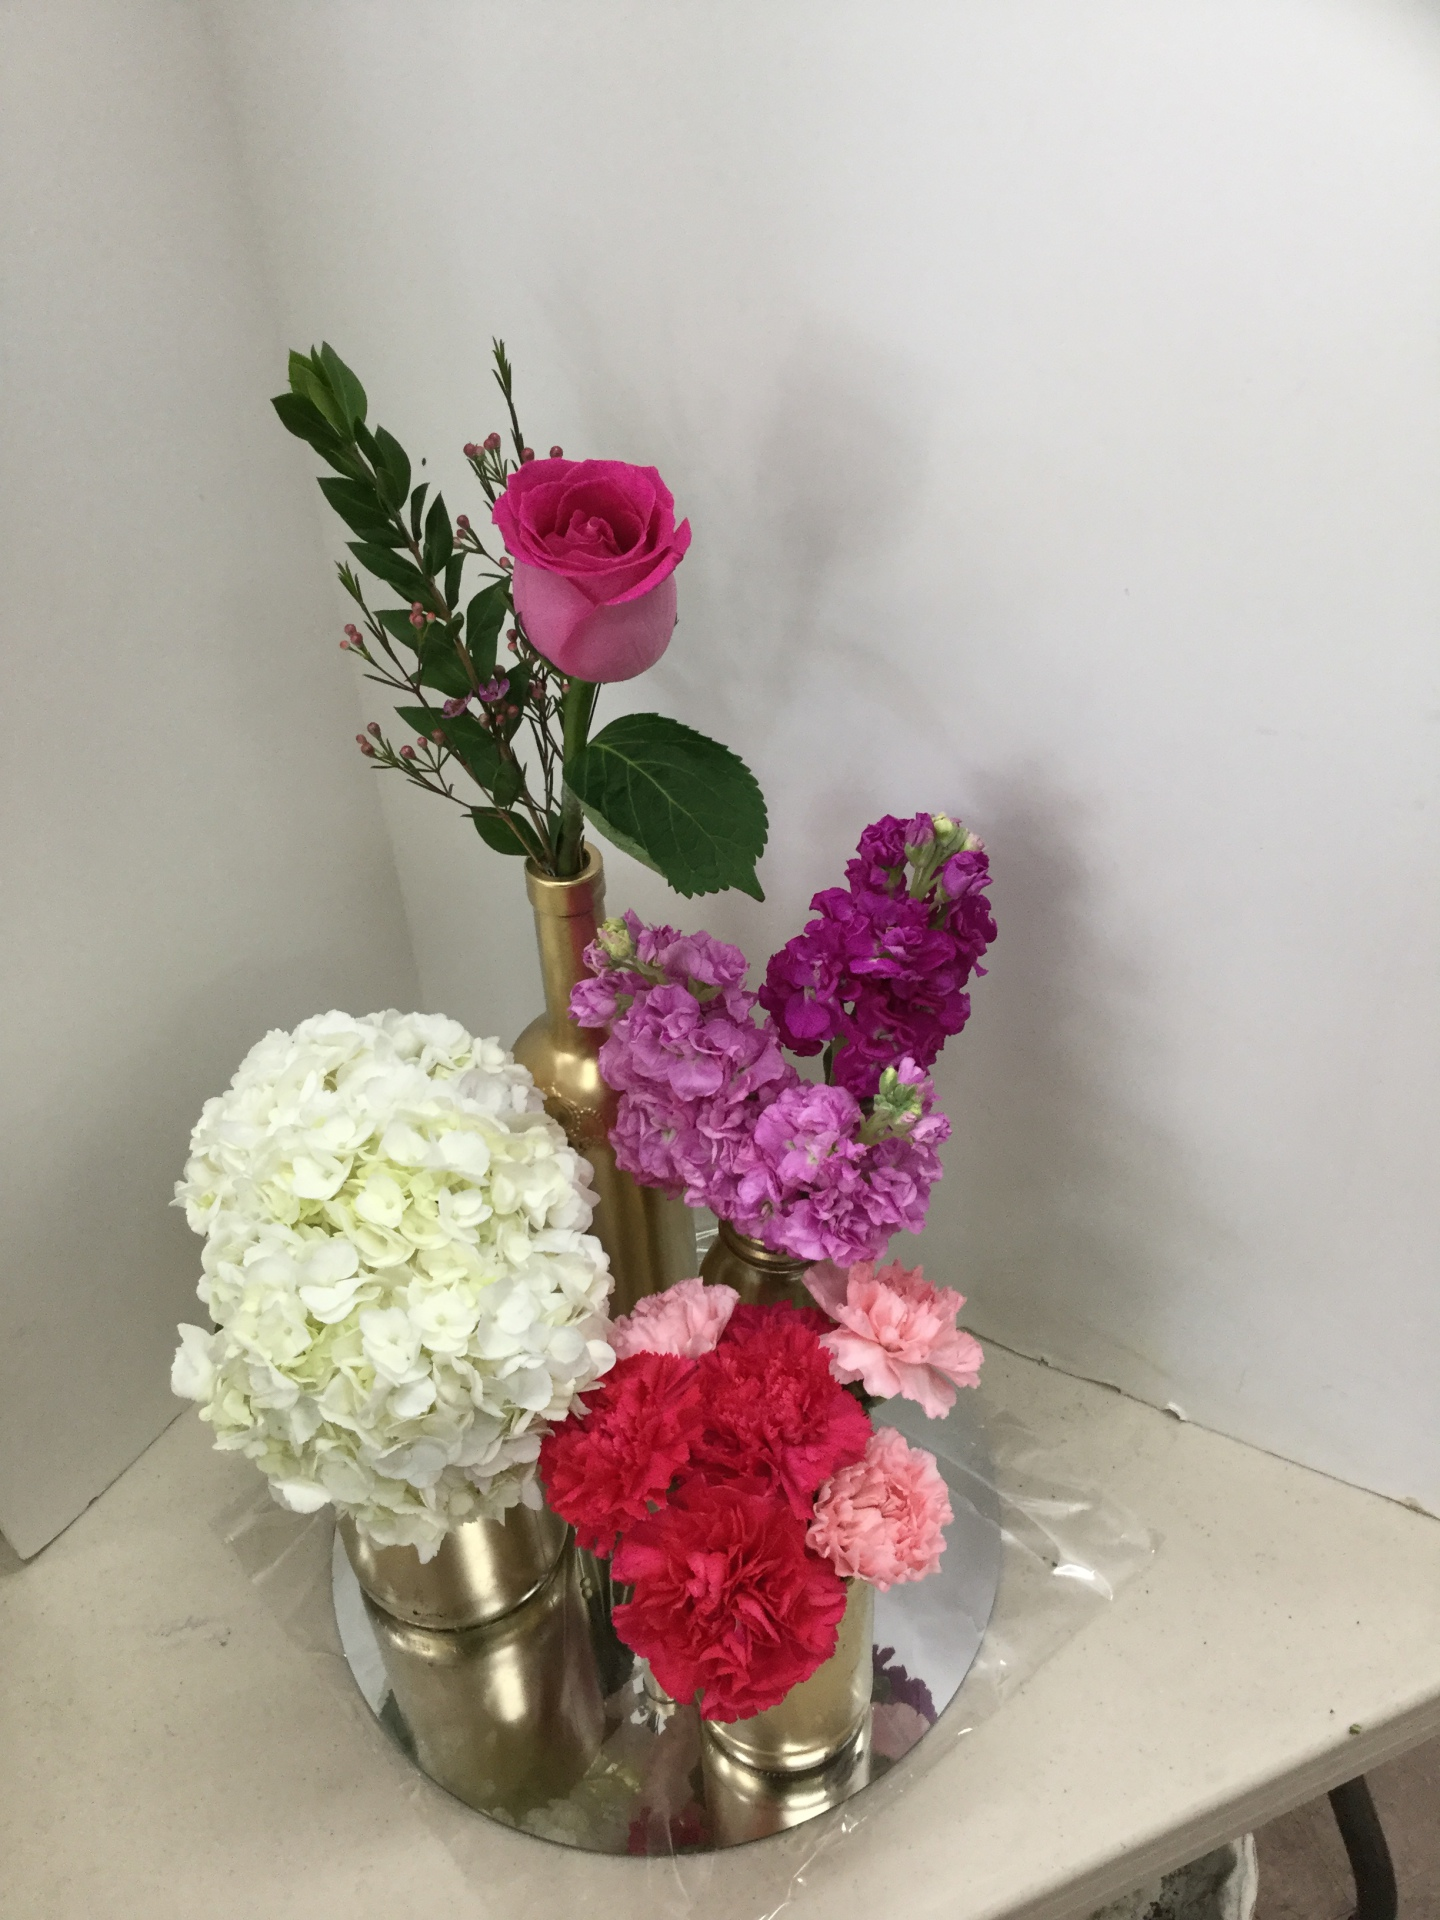 Wedding Centerpieces - Cluster of Vases